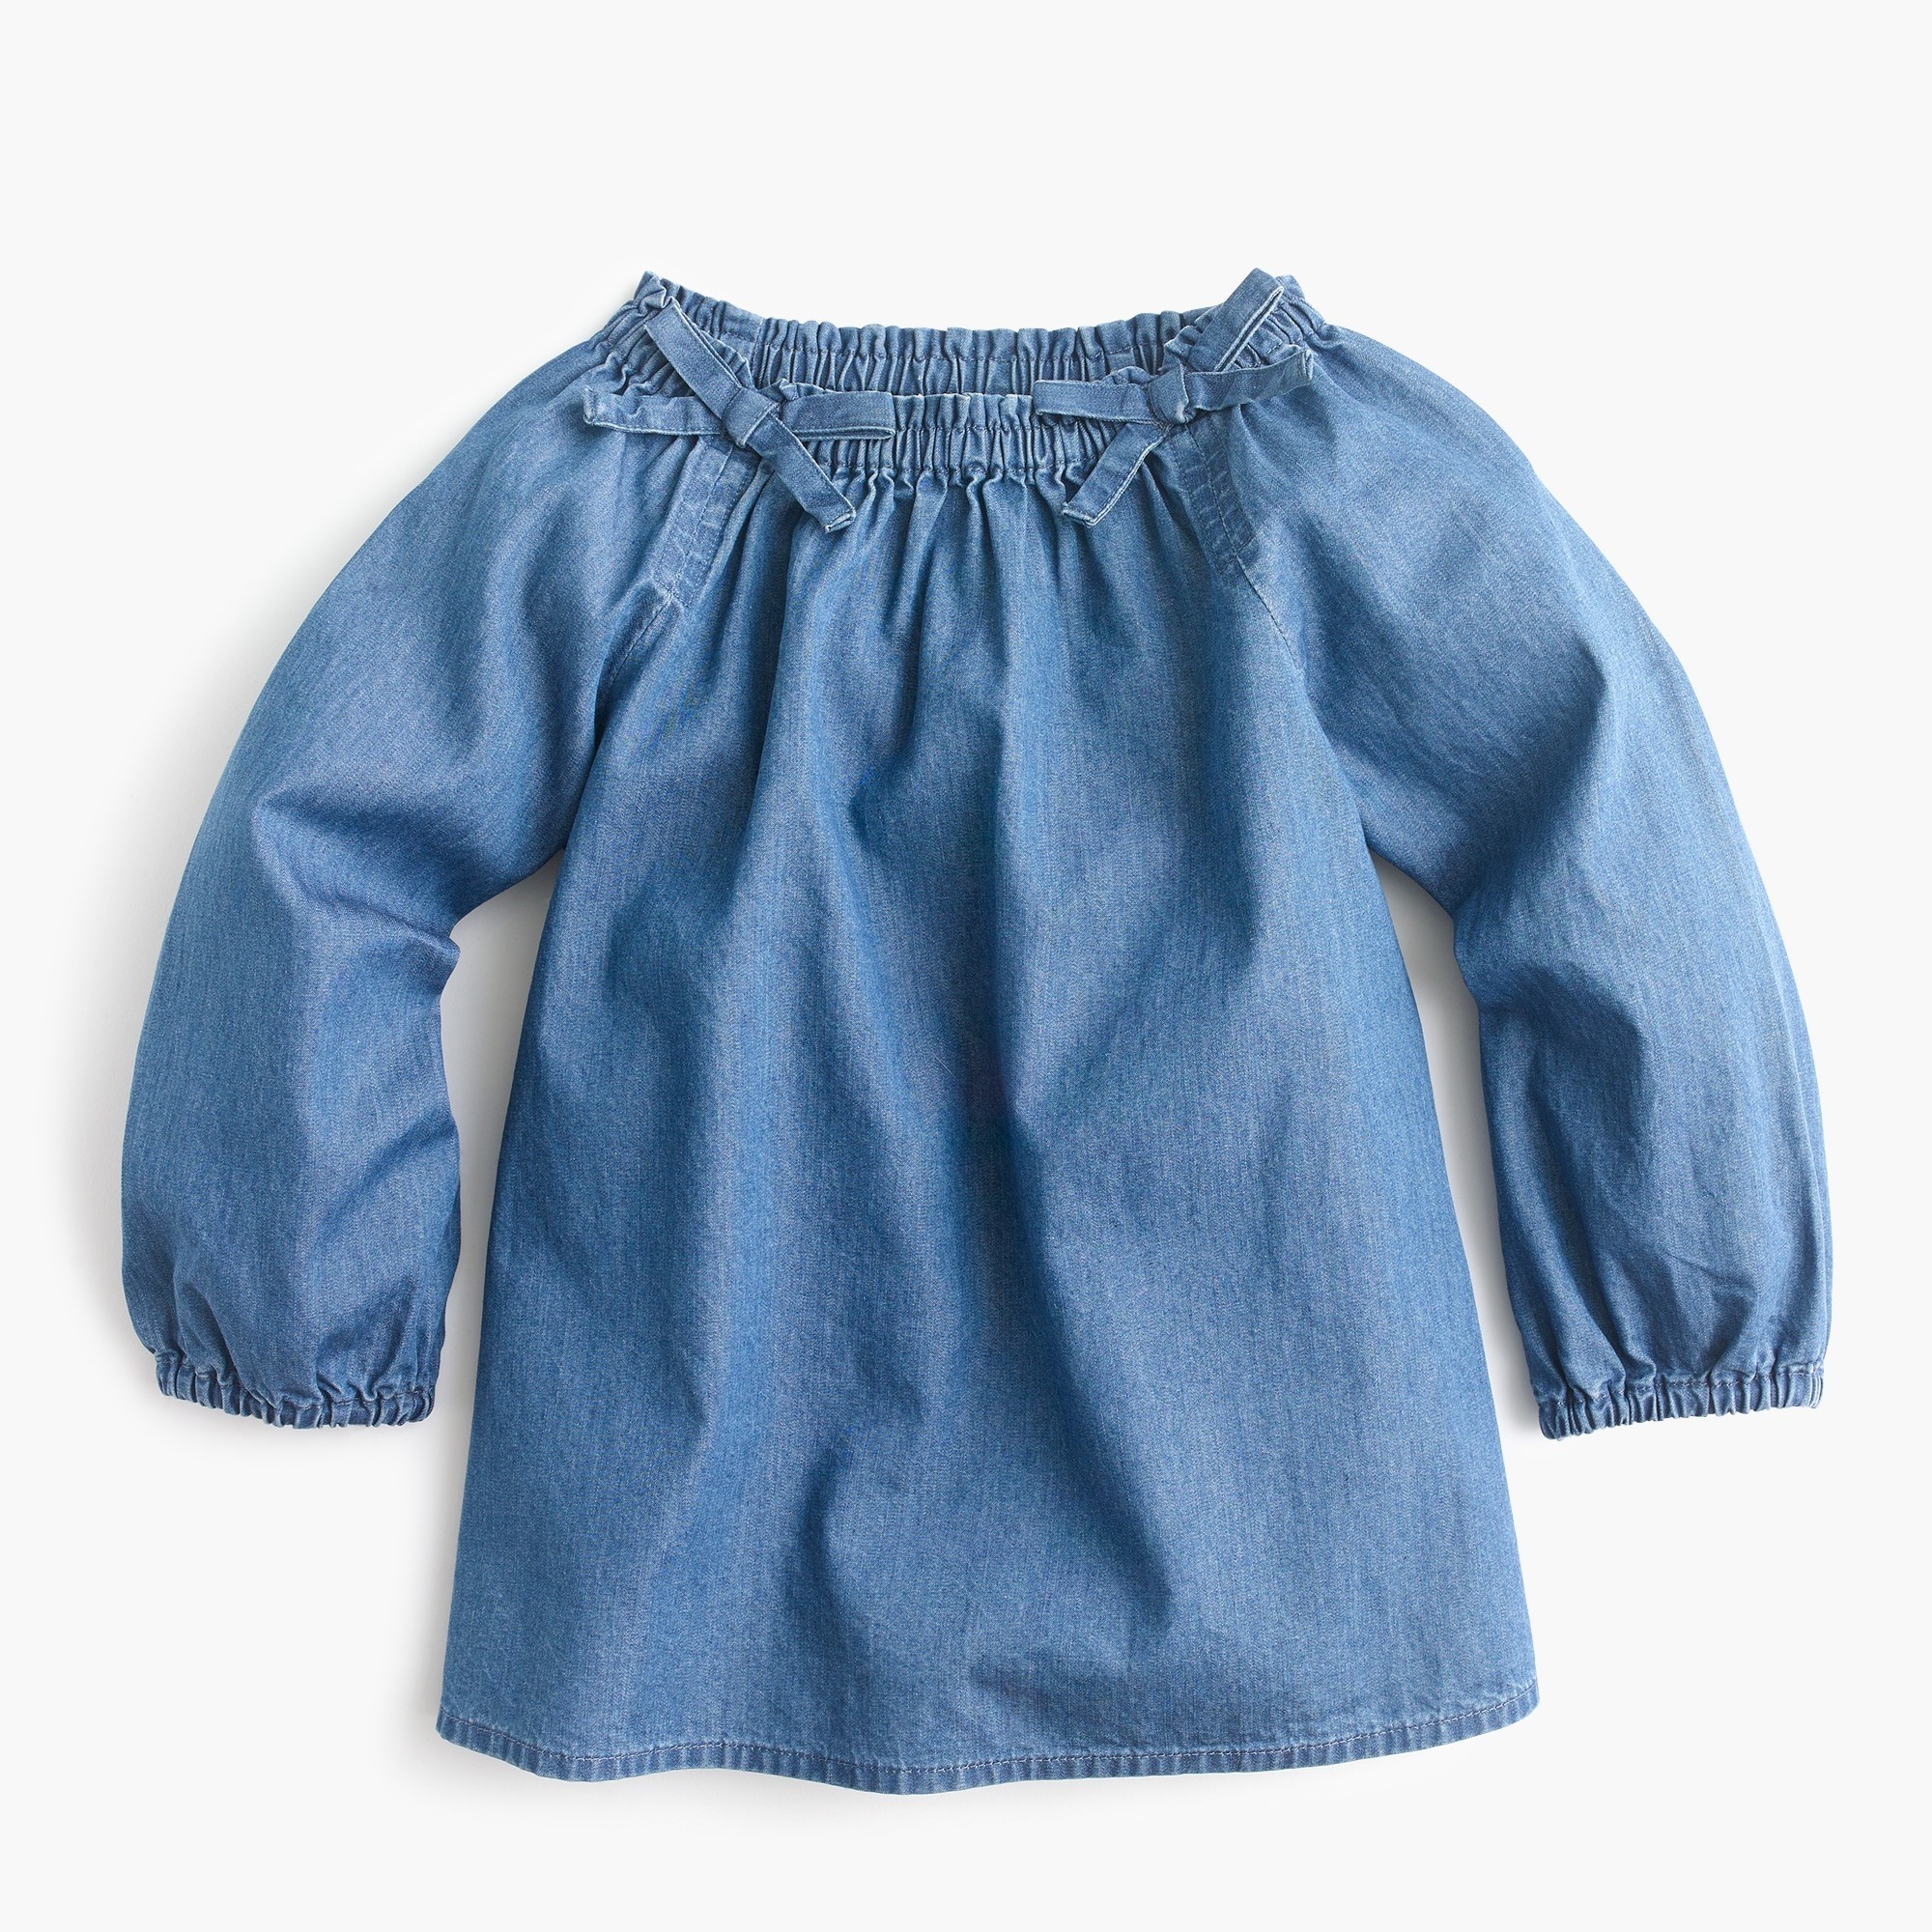 girls' smocked-neck top in chambray : girl novelty shirts